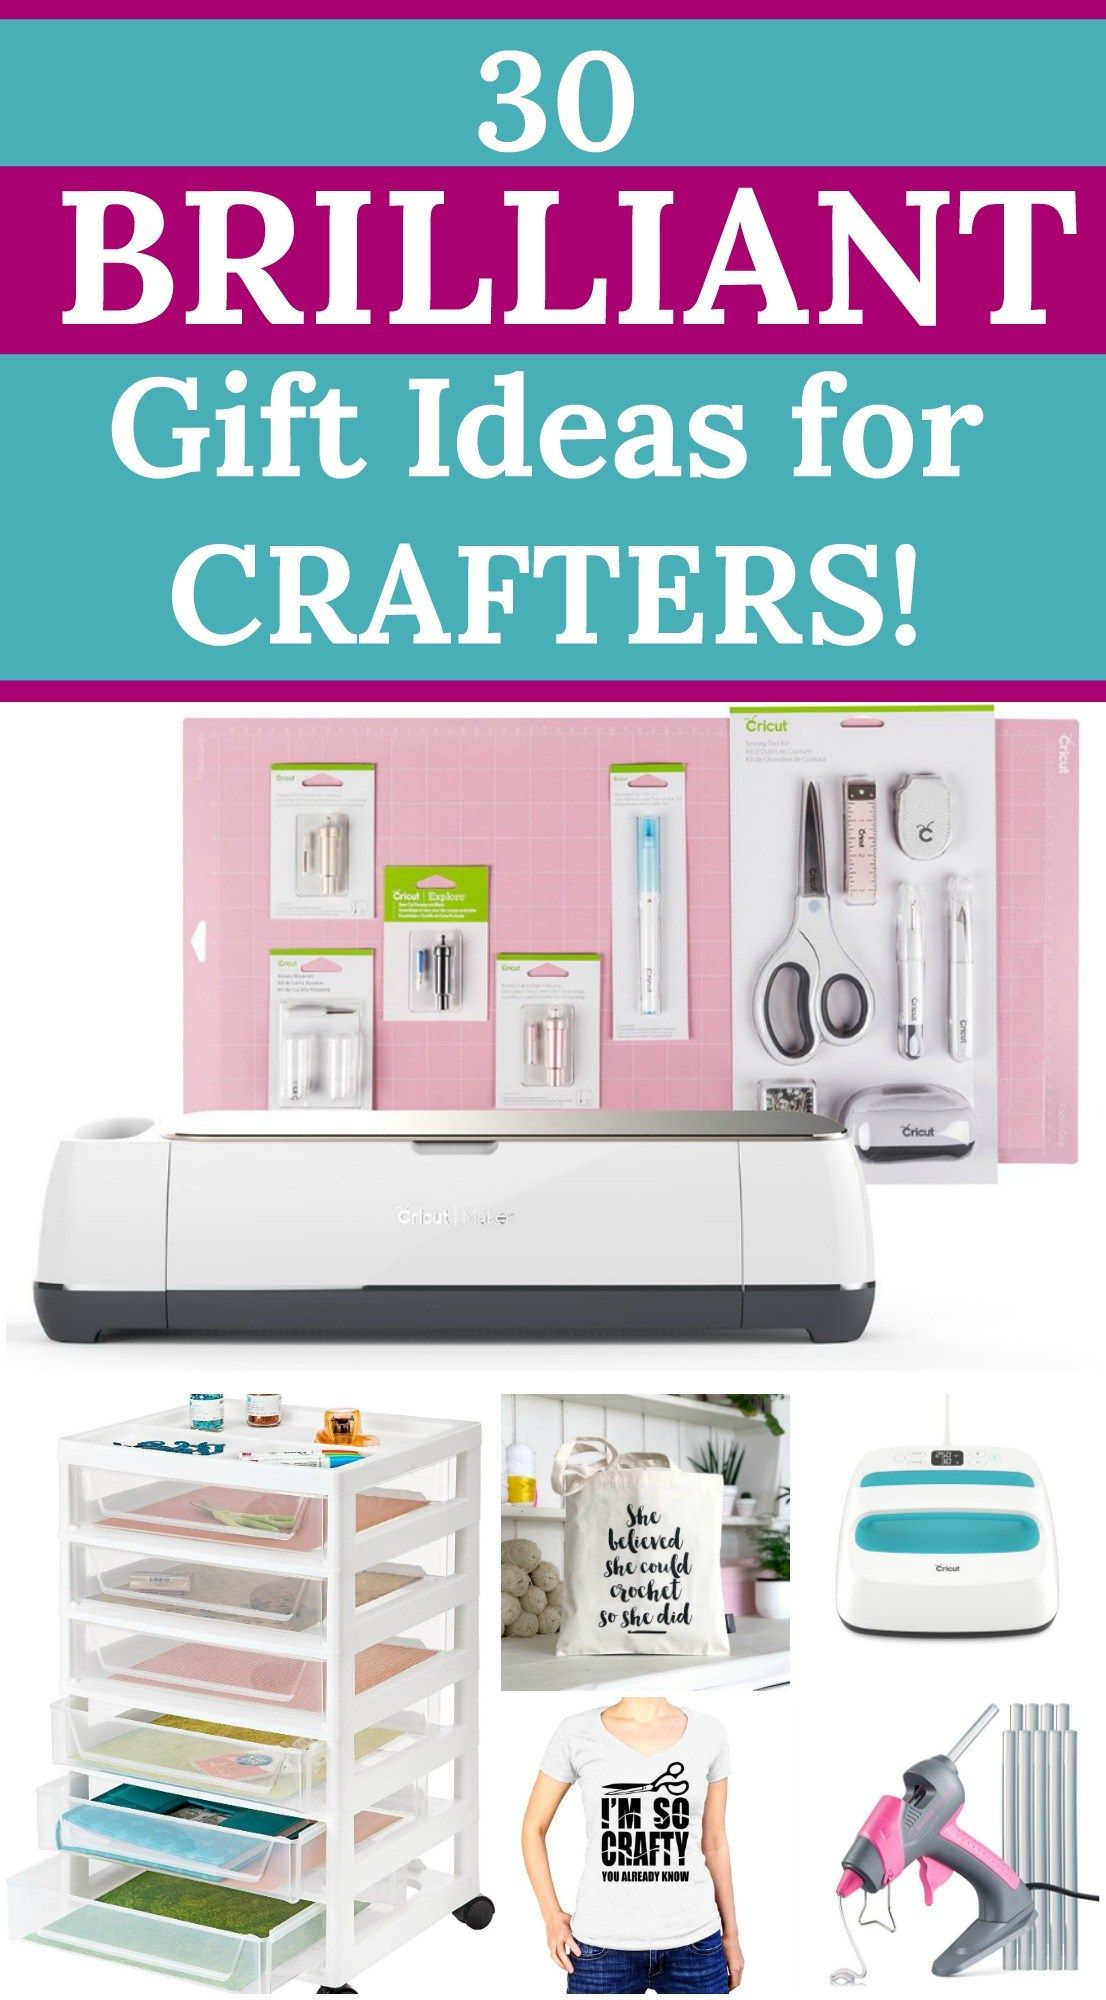 Gift Ideas For Crafters 30 Brilliant Gifts For Crafters Your Christmas Gift Guide To Shopp Christmas Projects Diy Diy And Crafts Sewing Easy Christmas Crafts